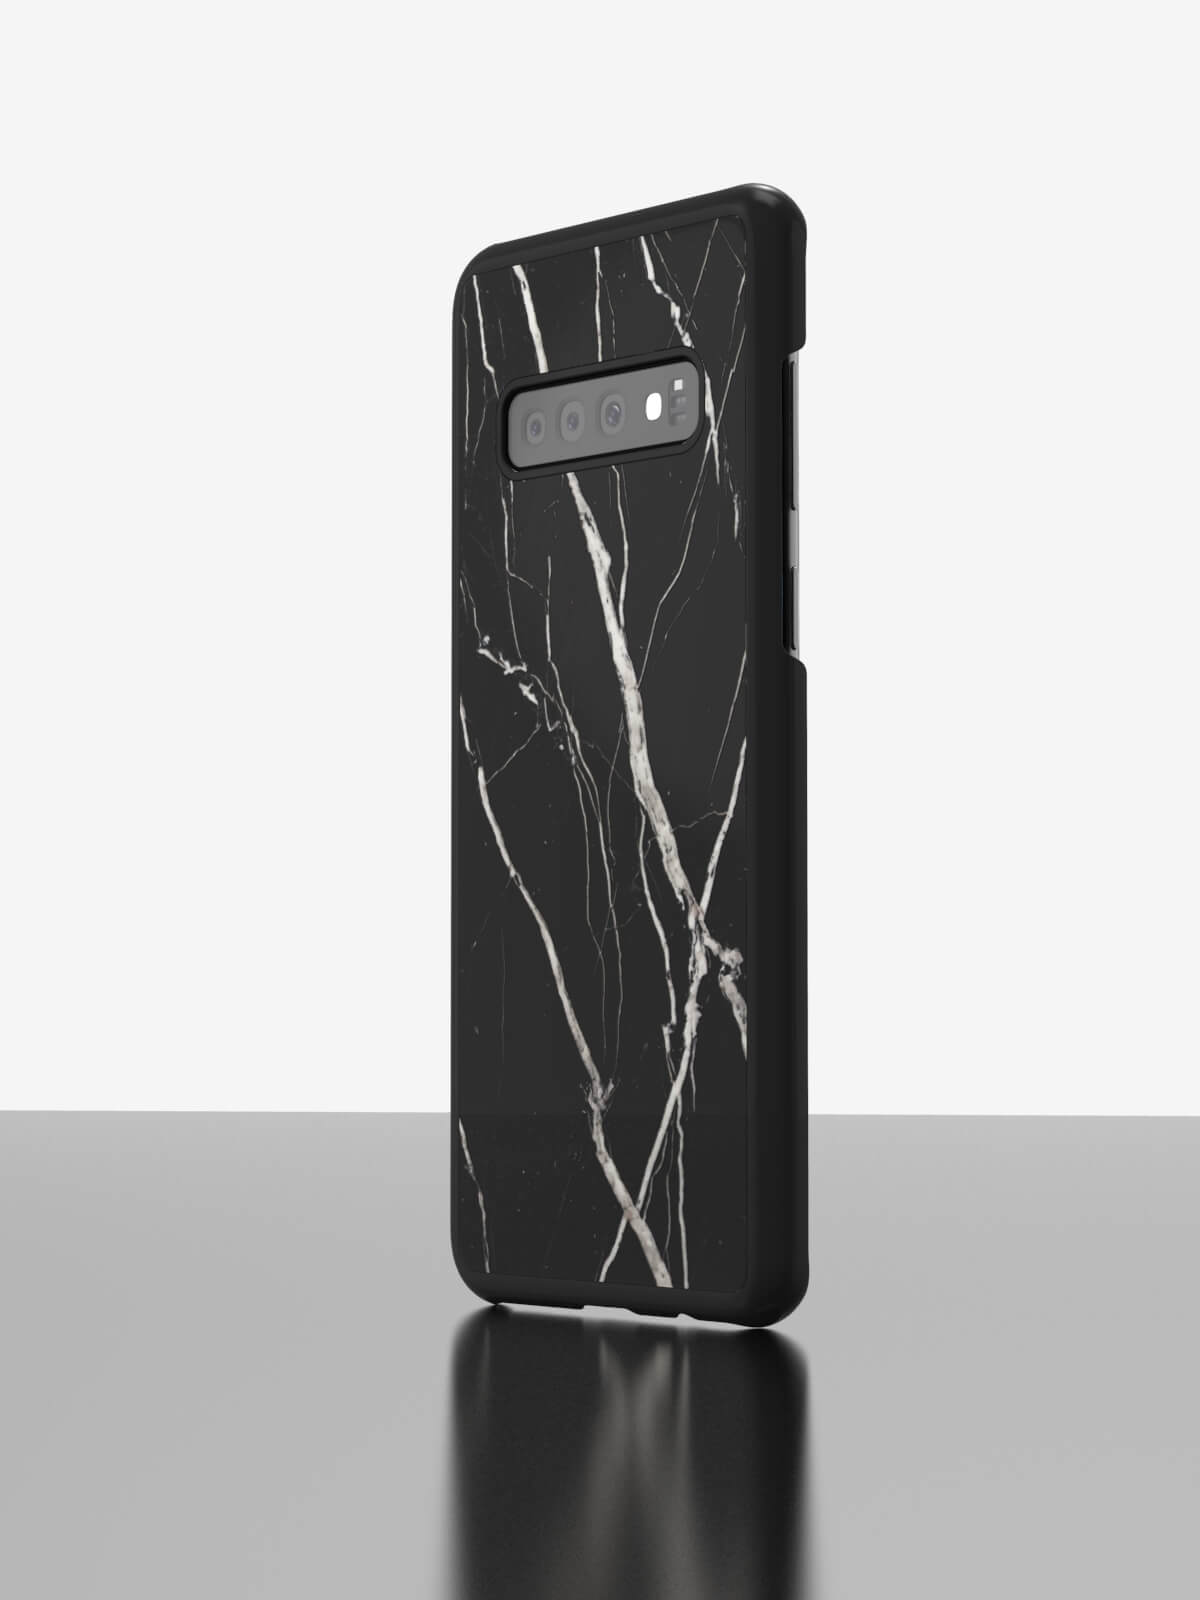 The Galaxy S10 Marble Case Nero Marquina